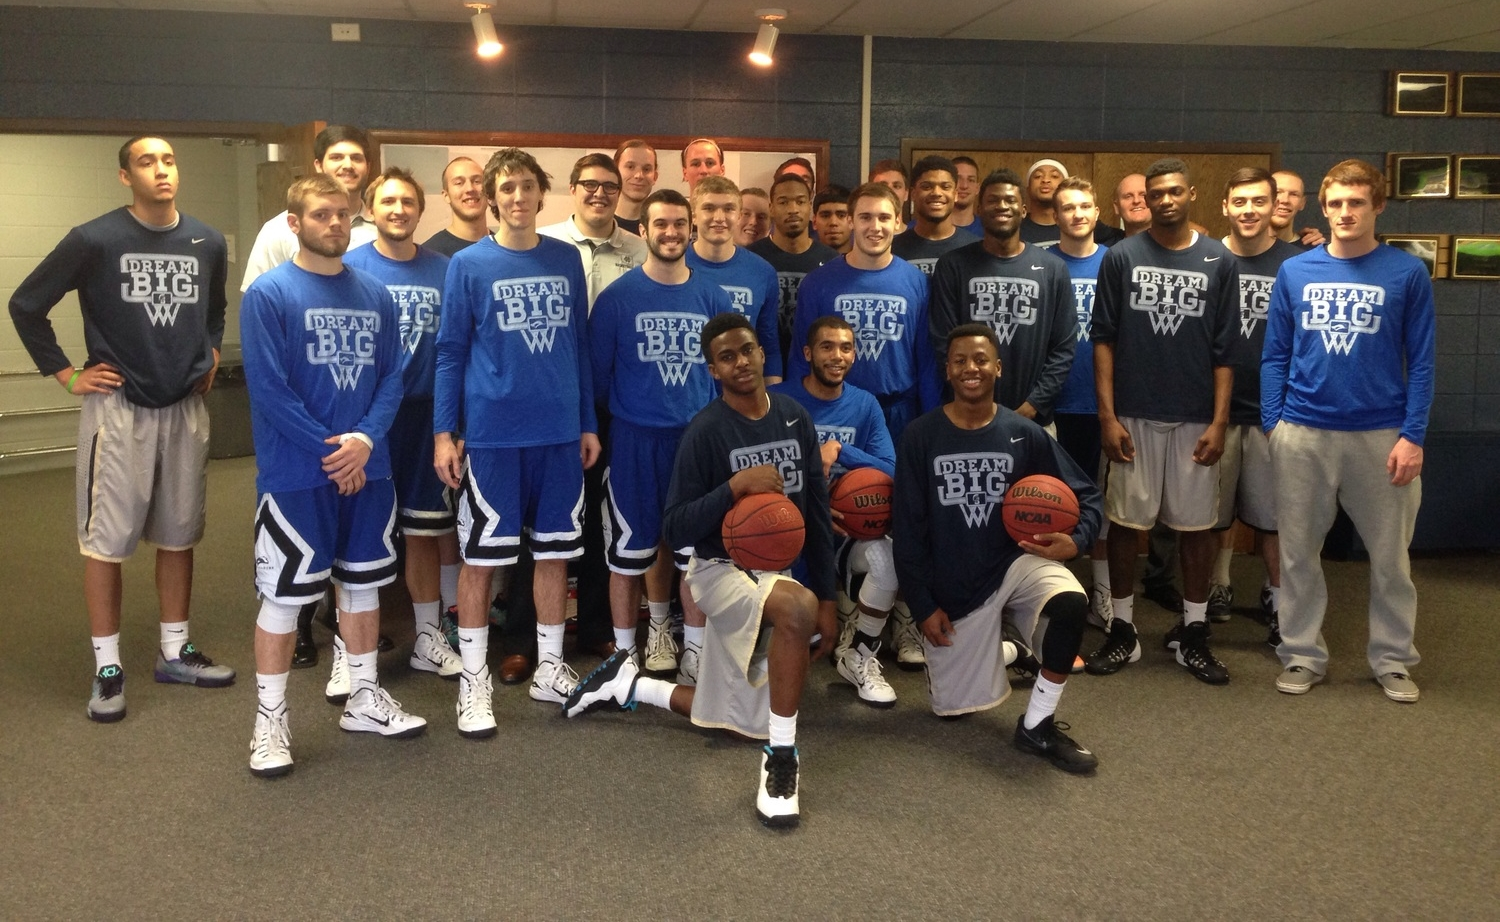 Hillsdale Baptist vs. Ozark Christian-January 31, 2015-Two Teams...One Game....One Cause!